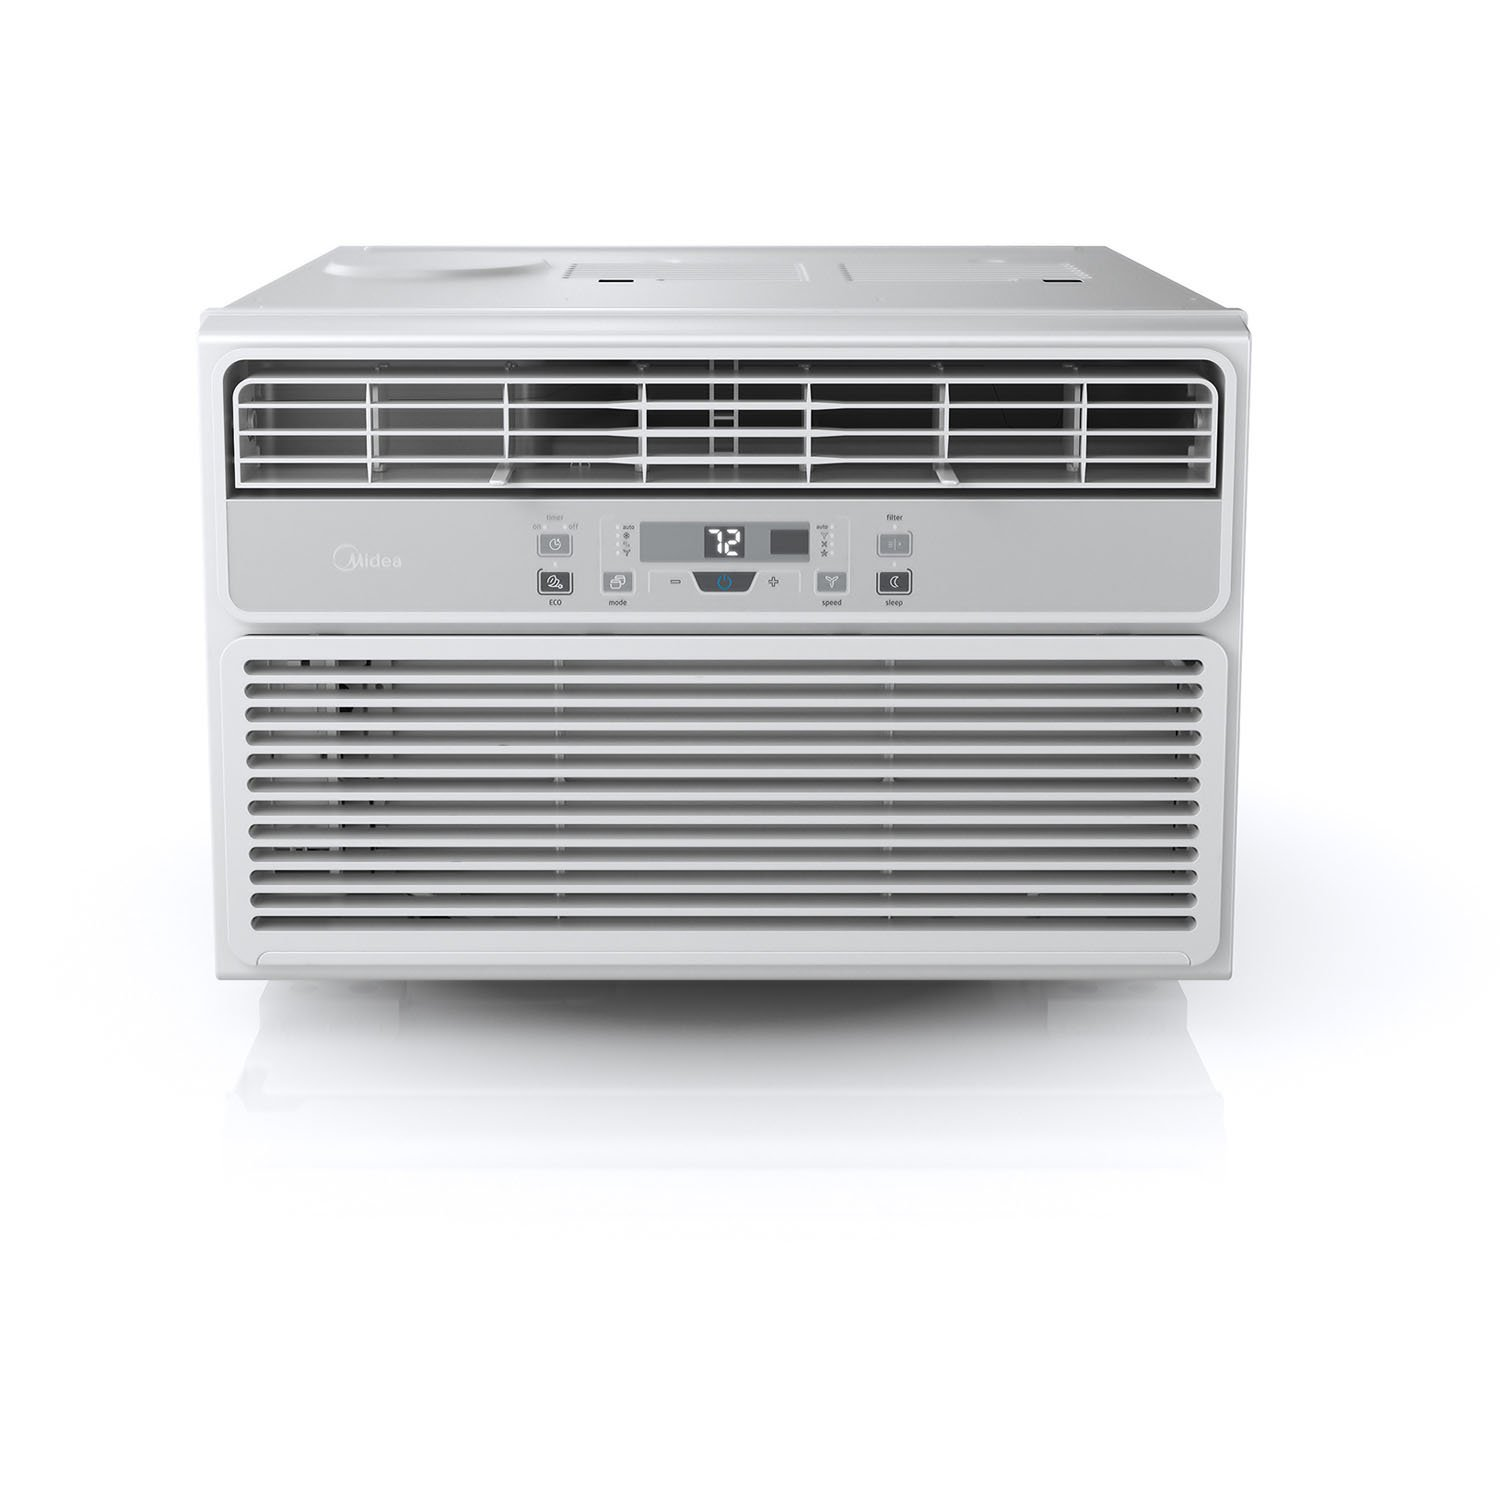 MIDEA Easy Cool 6,000 BTU Window Air Conditioner with Follow Me Remote Control